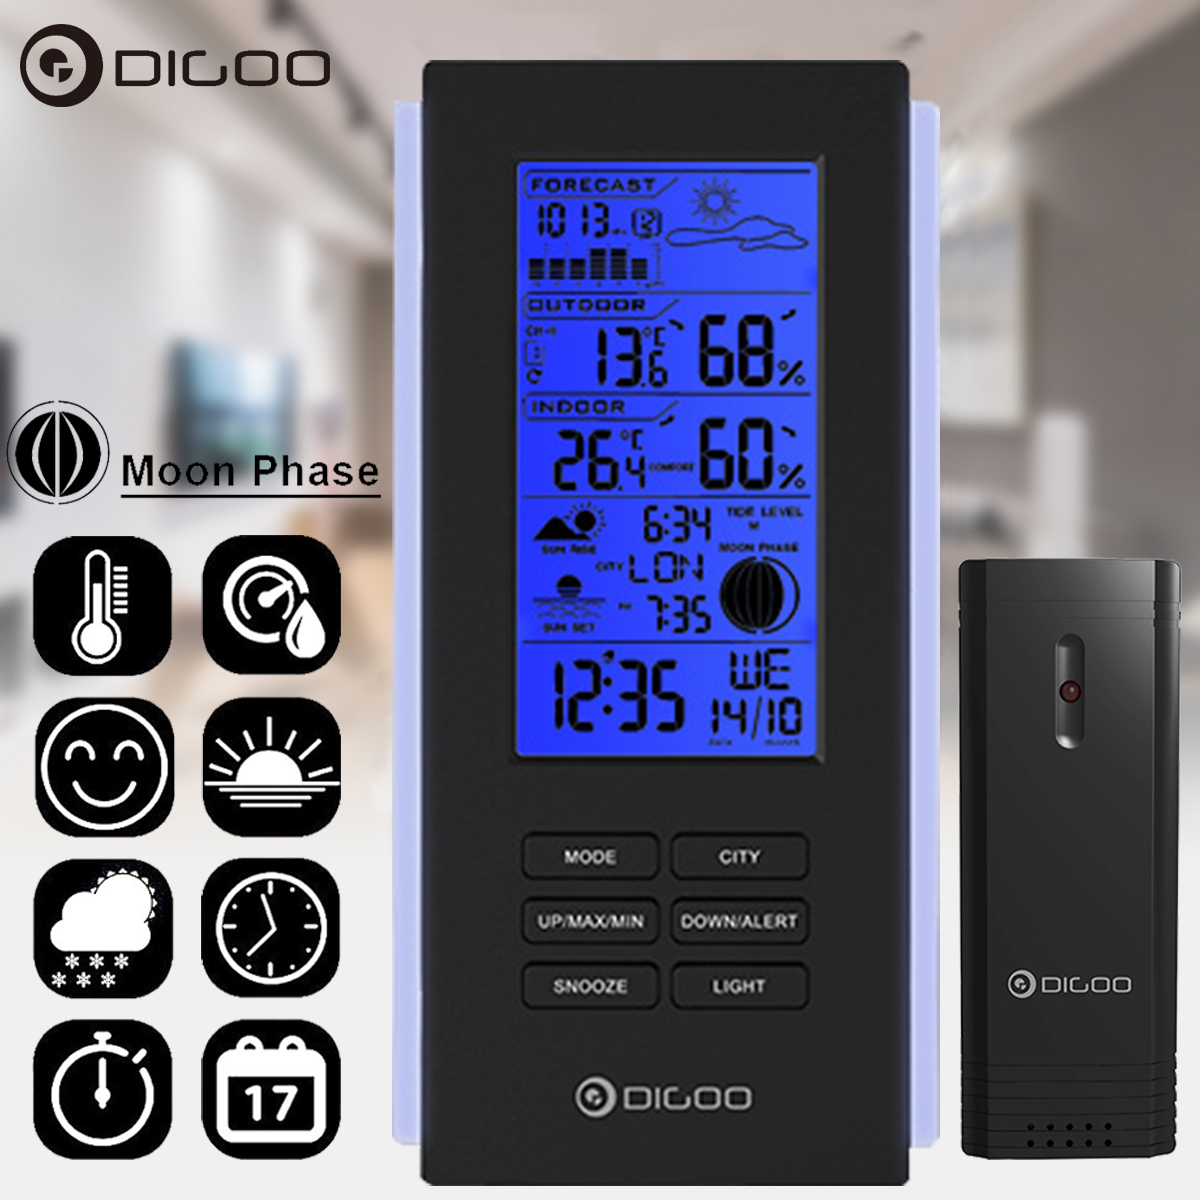 Digoo DG-TH6699 Wireless Weather Forecast Station+Calendar+ Snooze Alarm Clock +Indoor Outdoor Thermometer... by